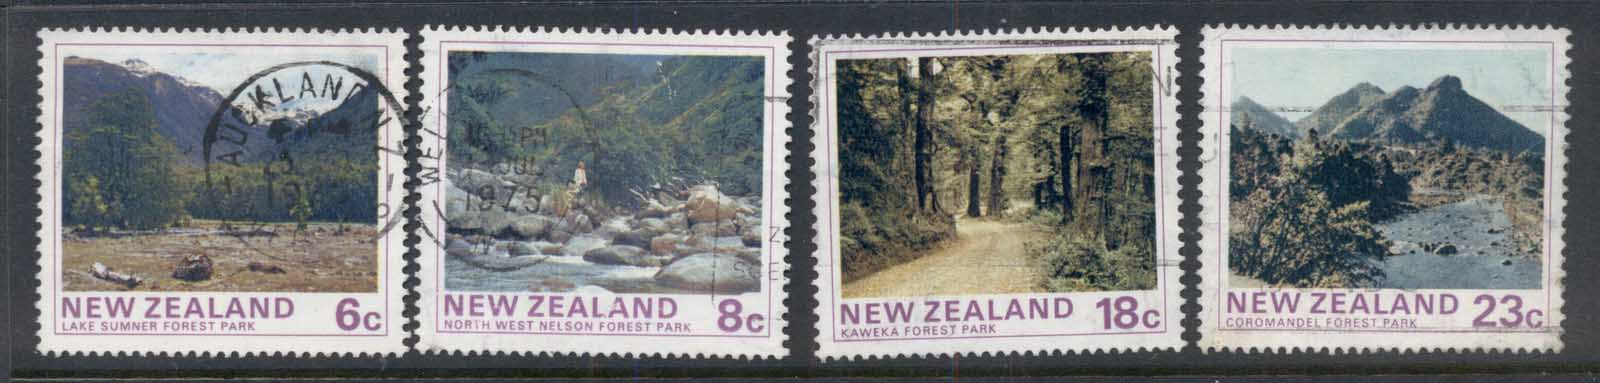 New Zealand 1975 State Forest parks FU